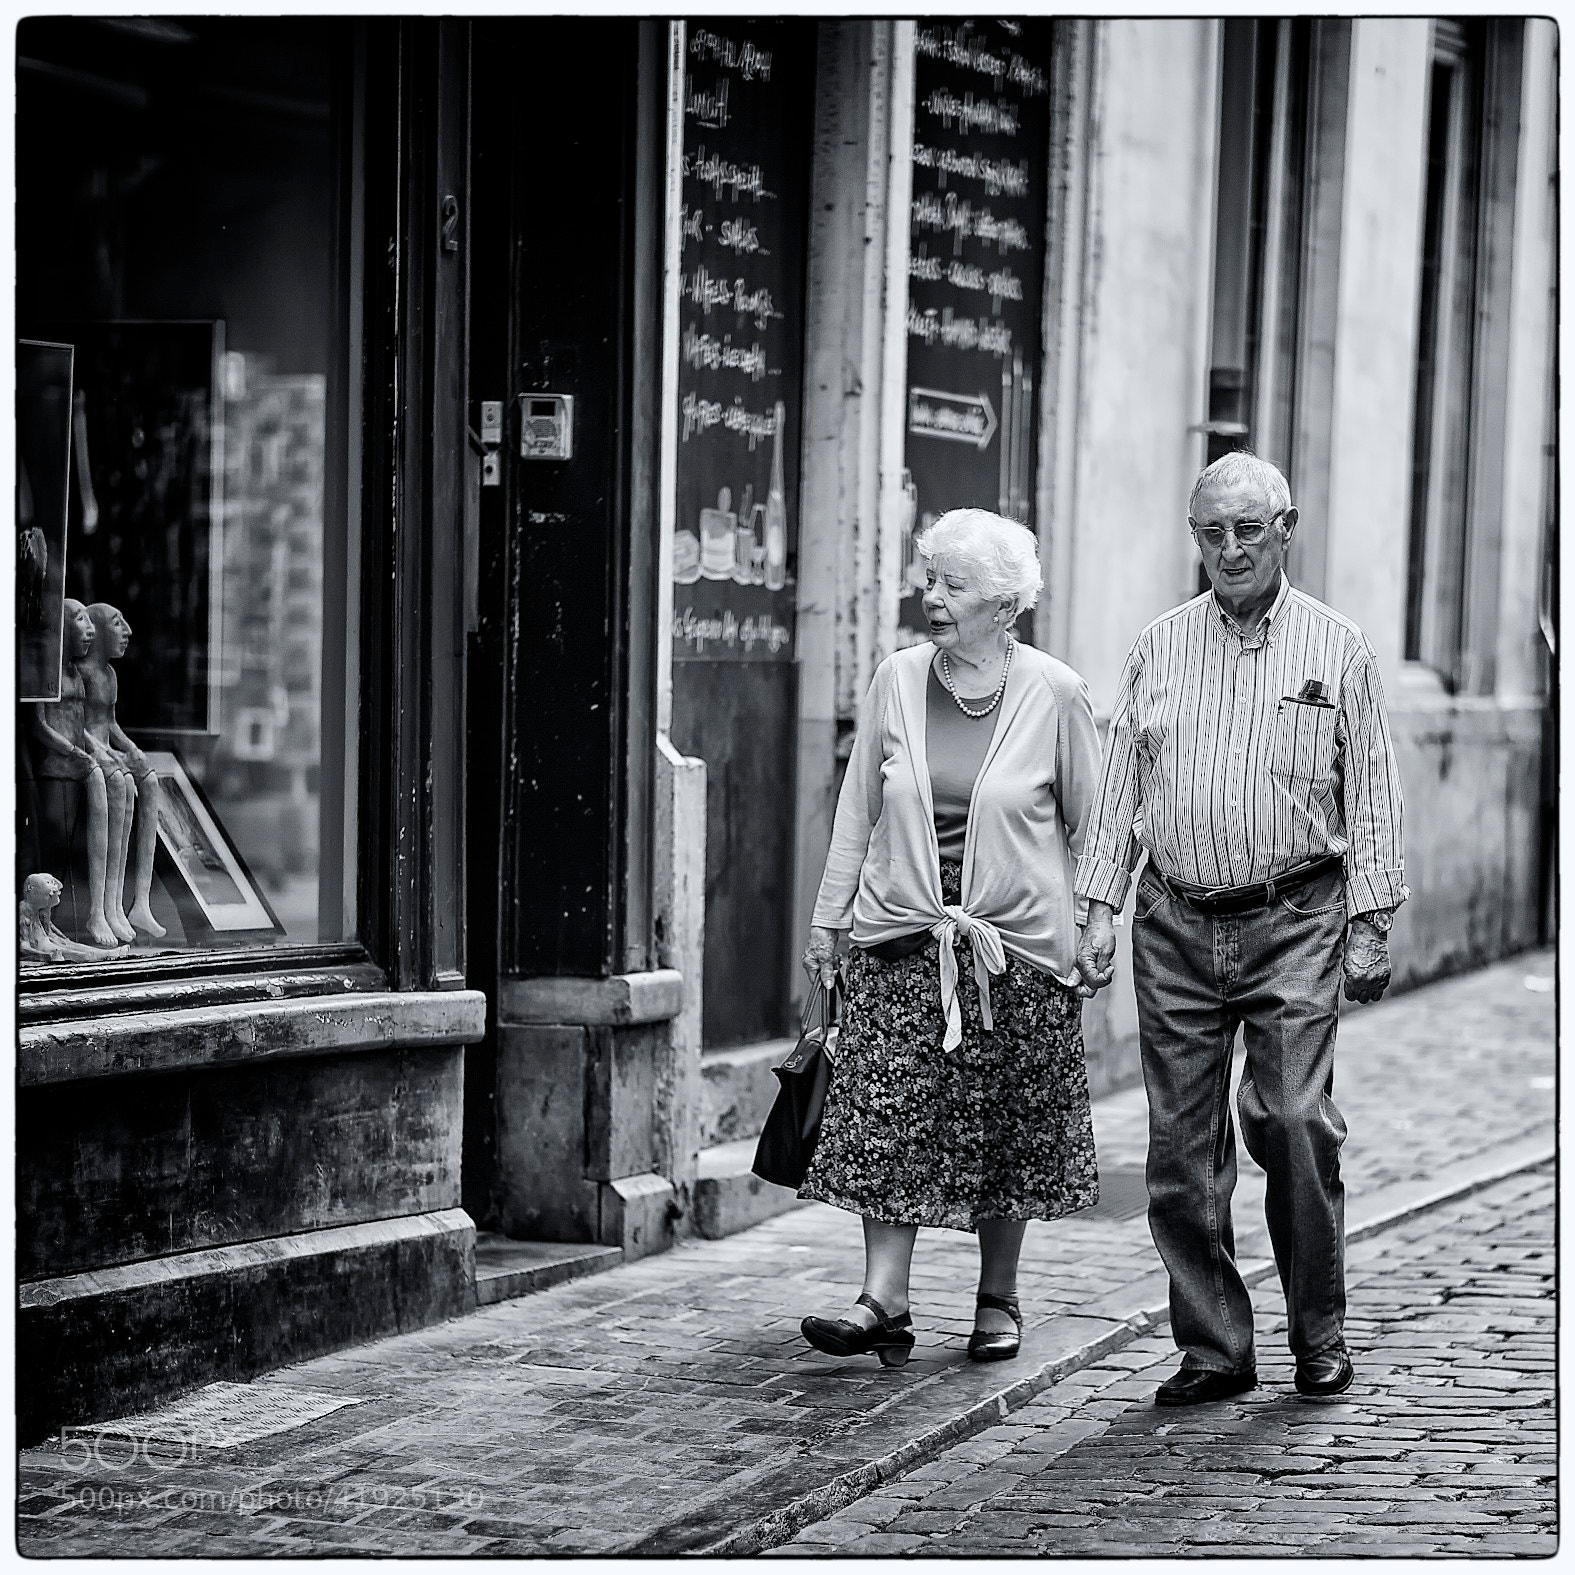 Photograph The Observers by Fouquier  on 500px